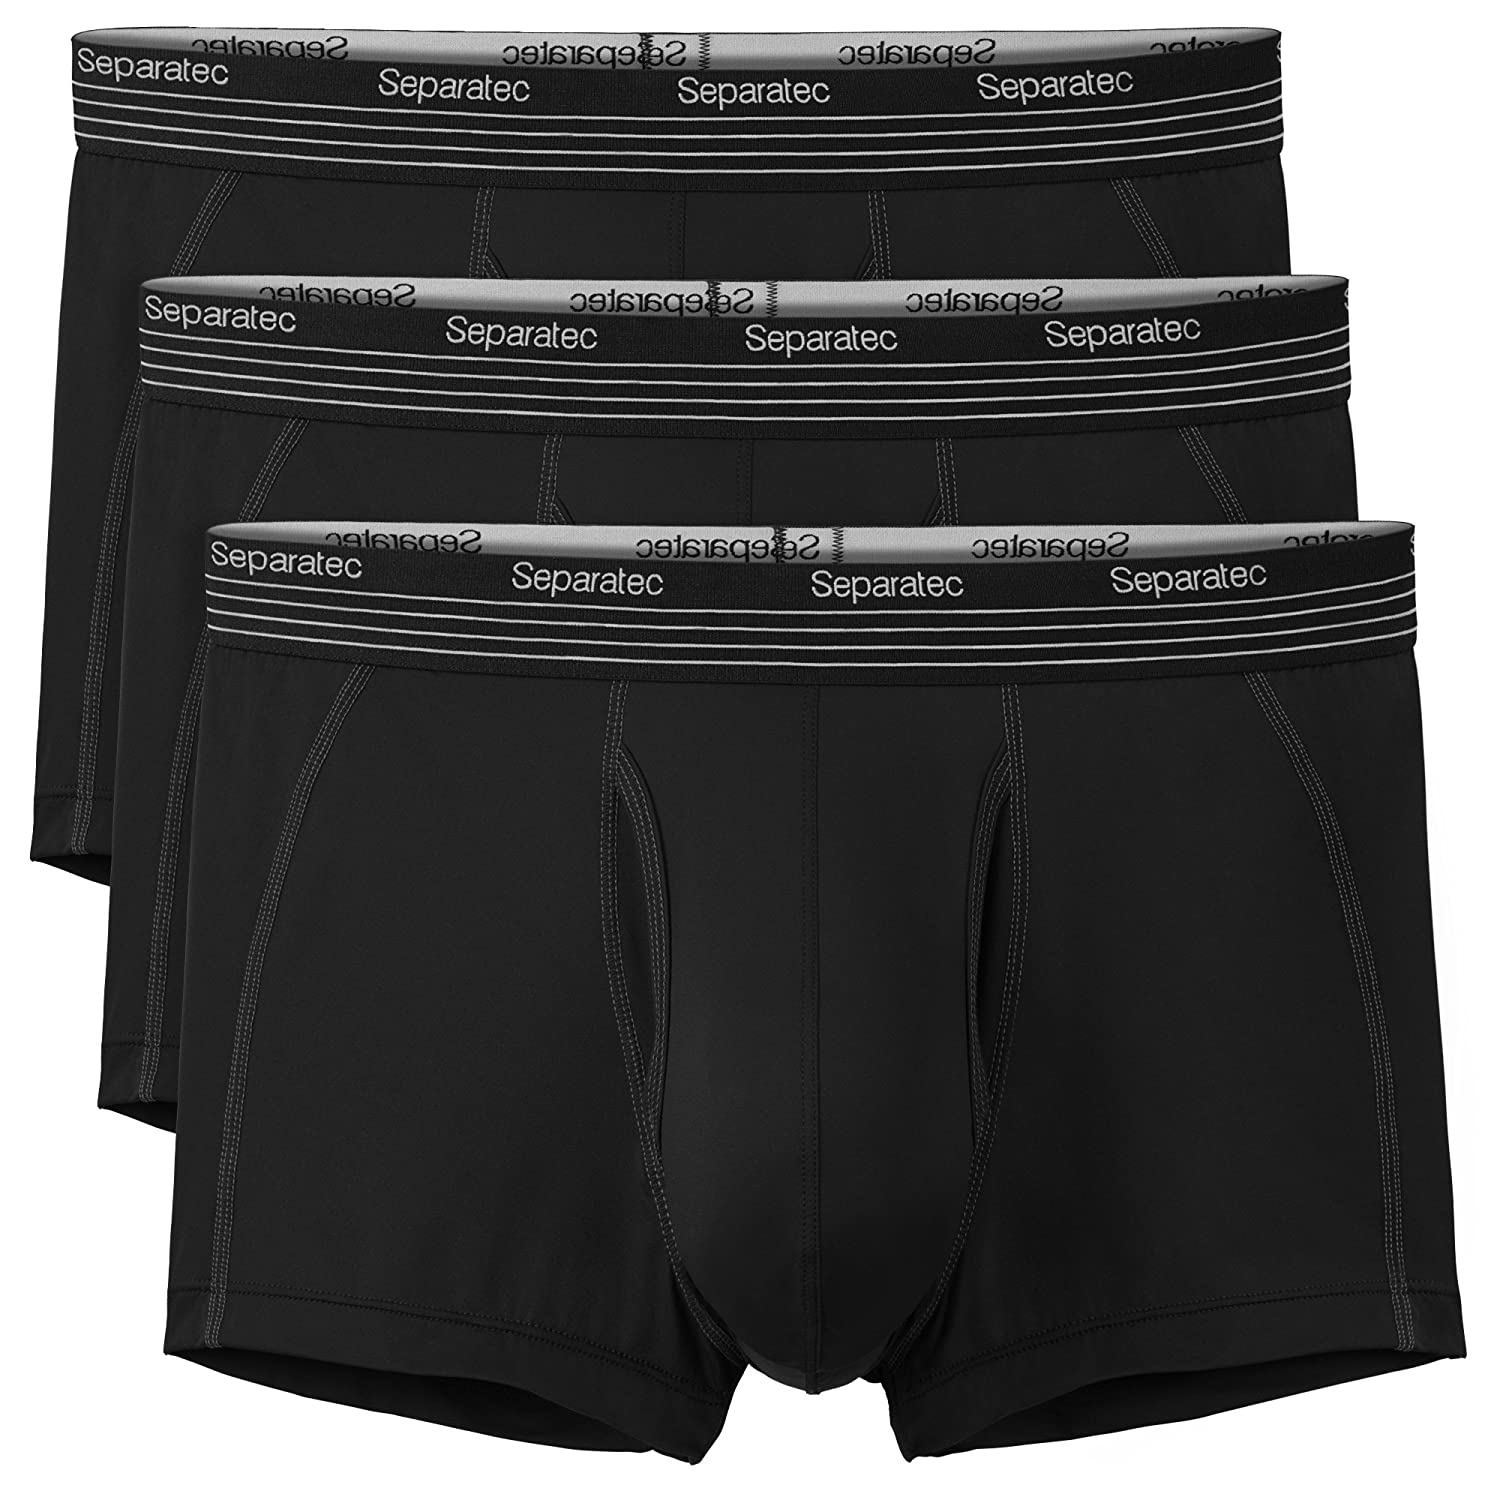 L, Black 3 Pack Fitted Trunks Mens Underwear Bamboo Rayon Trunks with Separate Pouches Tech Separatec Mens Basic Solid Ultra Soft Trunks Shorts